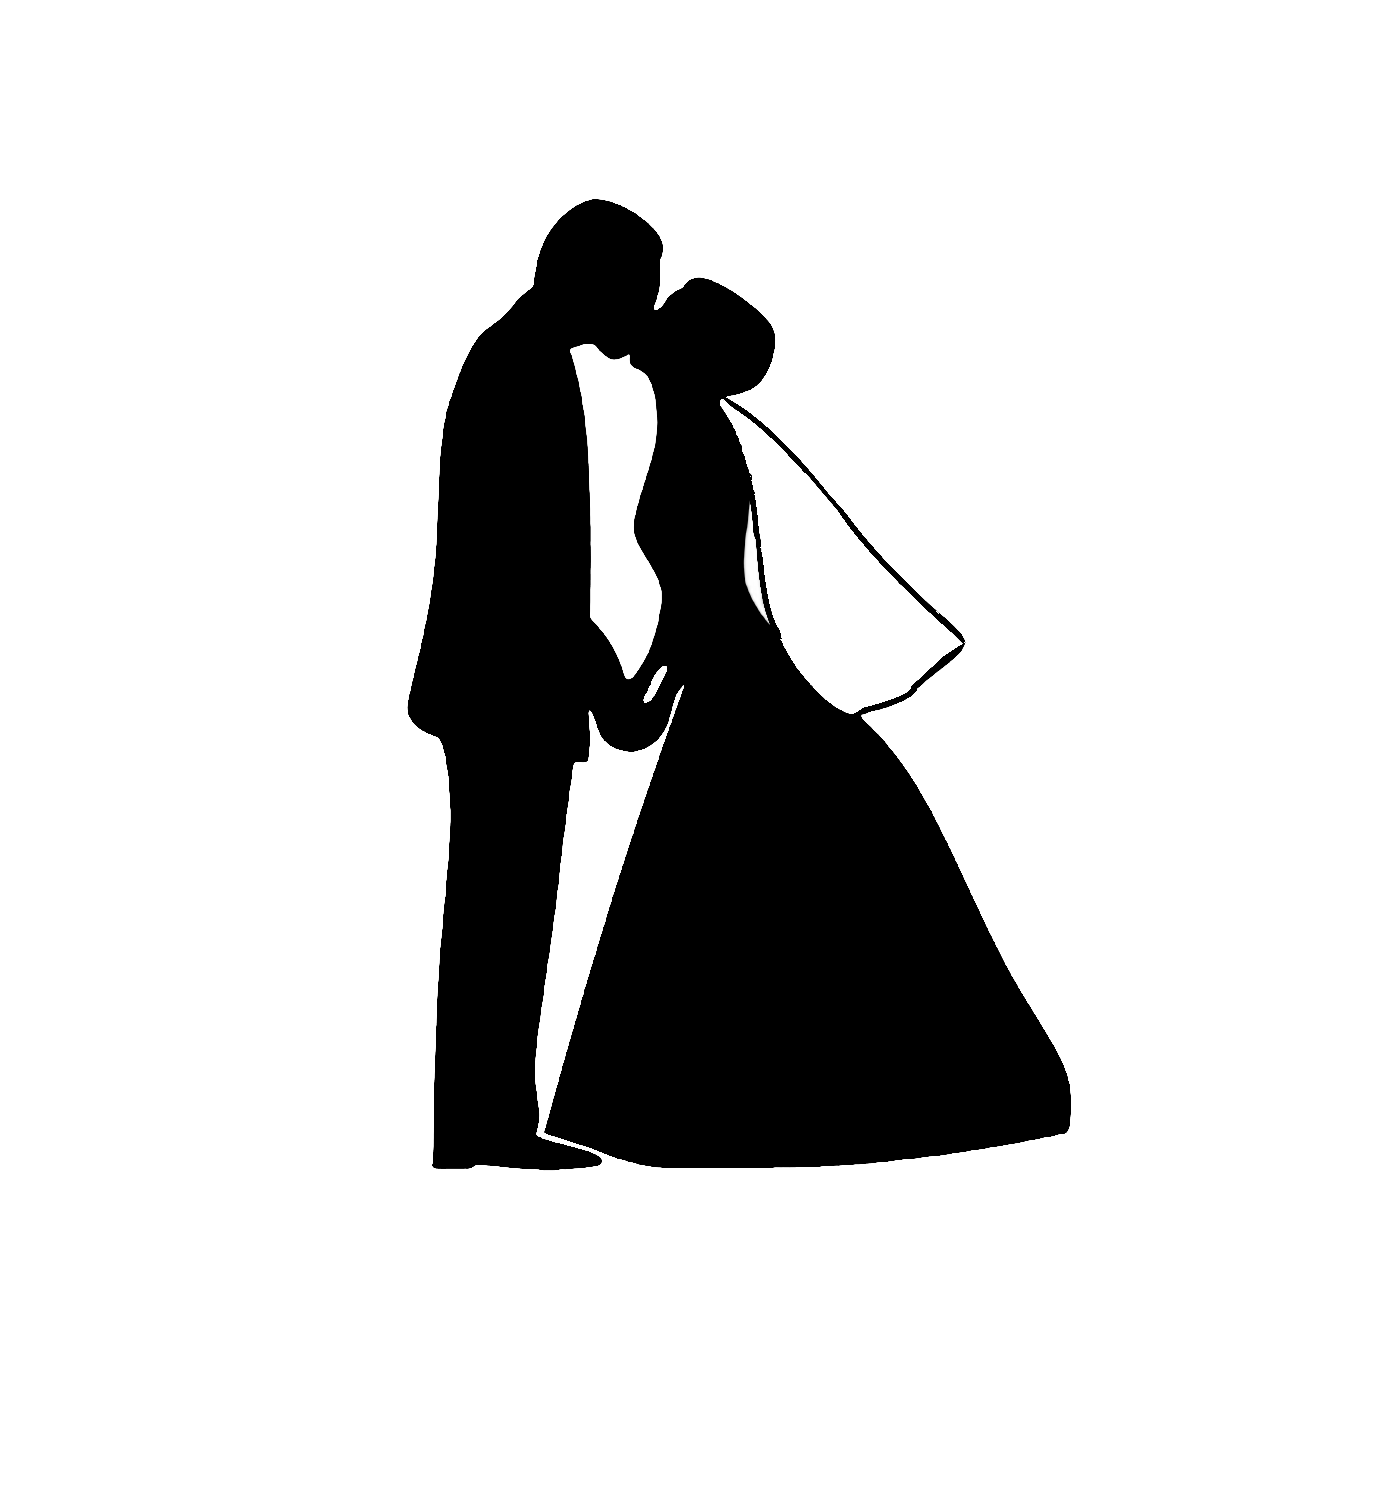 Bride and groom images clipart graphic freeuse library Free Bride And Groom Pictures, Download Free Clip Art, Free Clip Art ... graphic freeuse library